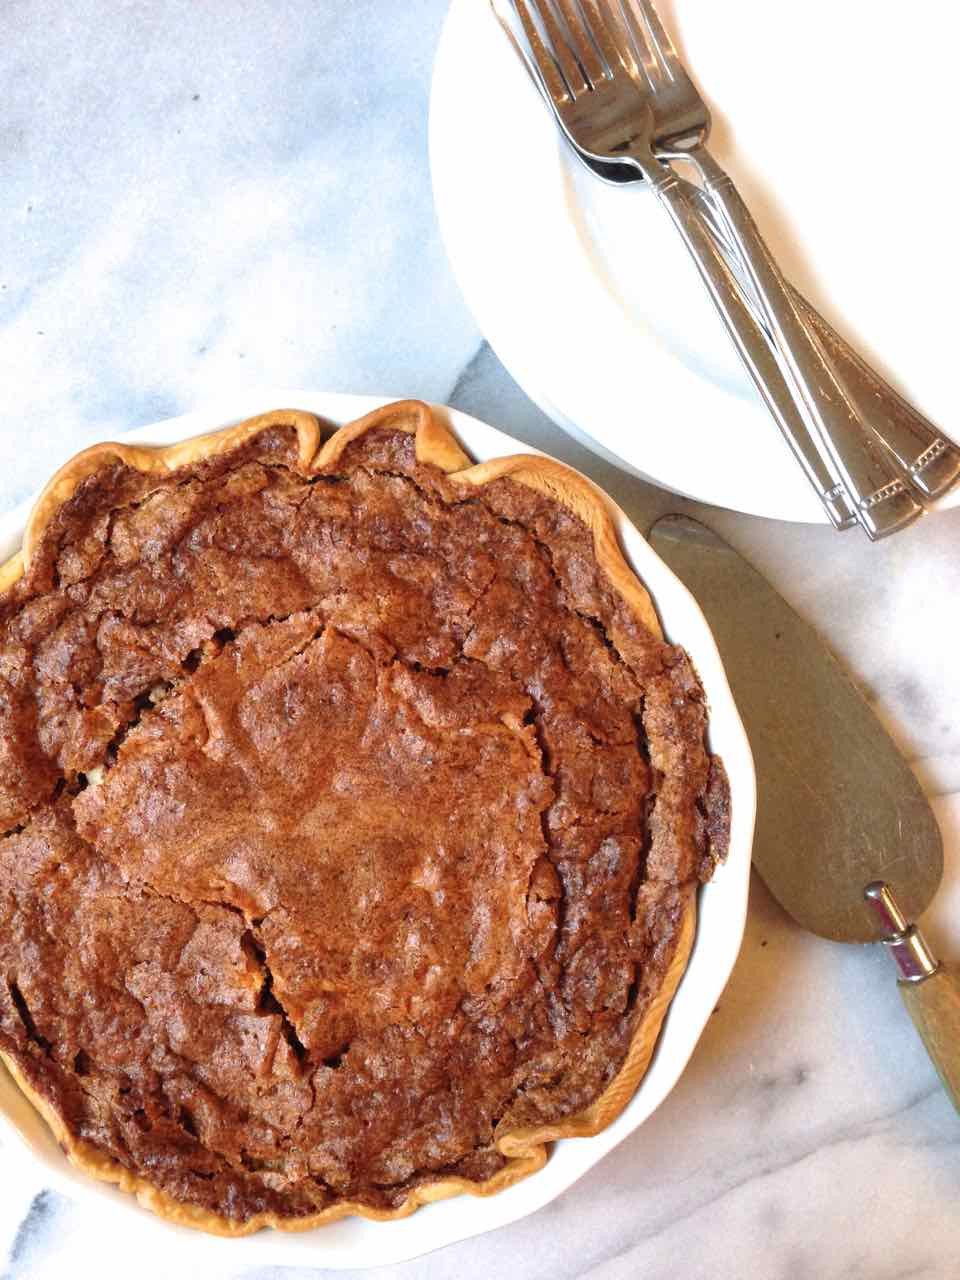 Buttermilk Pecan Pie c2014 TRC 7.jpg